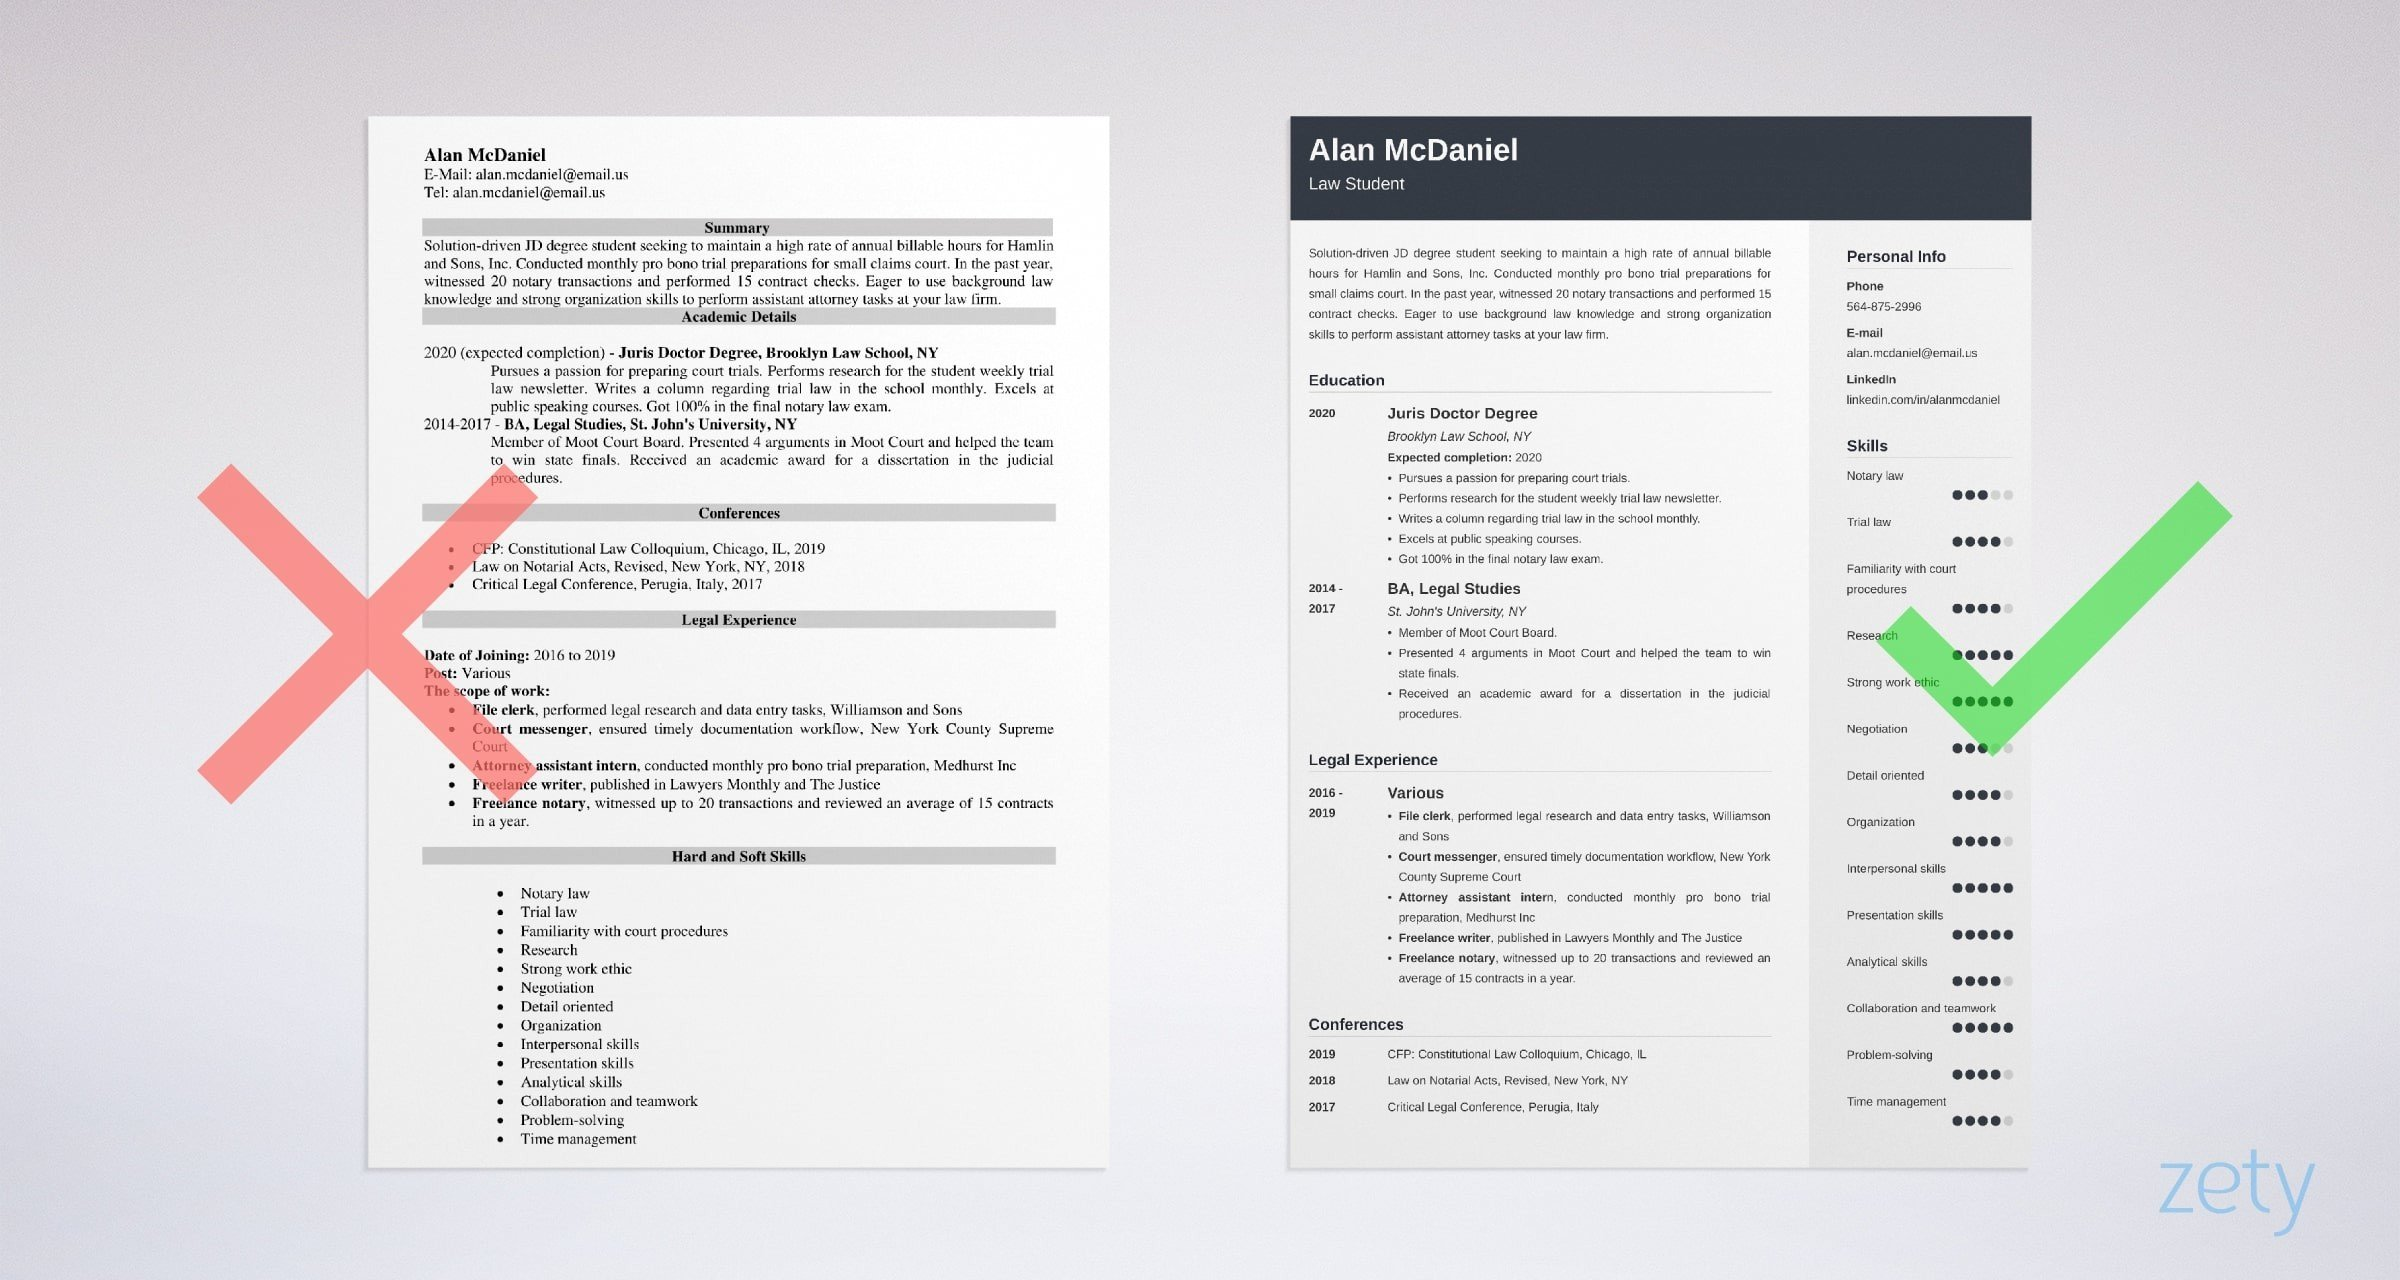 Law Student Resume With No Legal Experience Template Tips